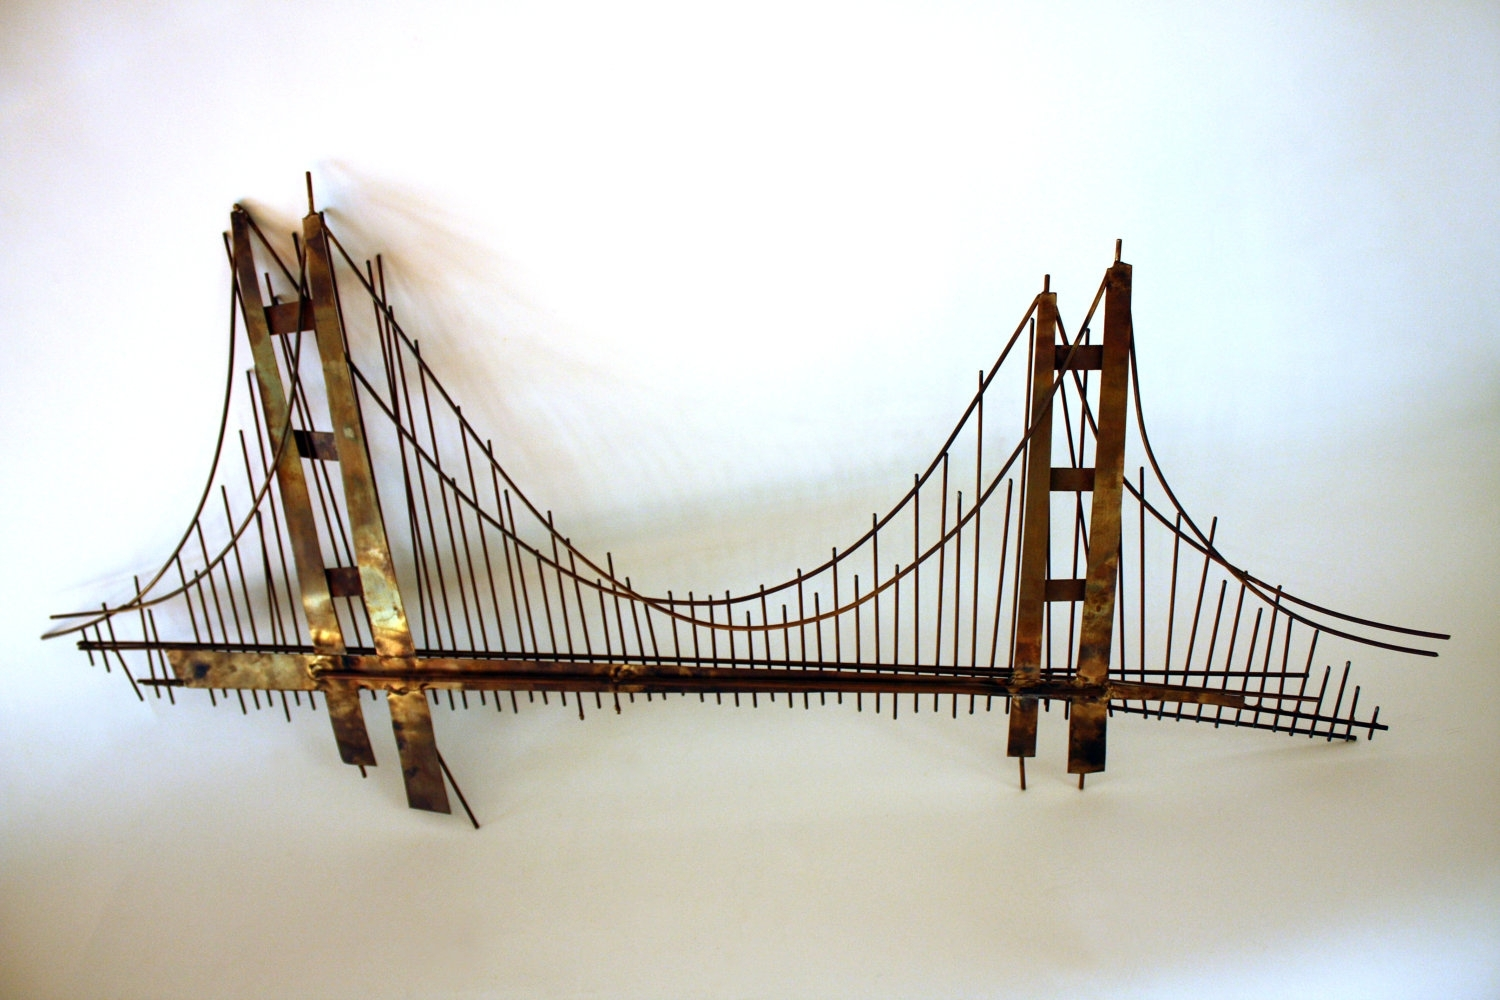 Wall Art Decor: 3 Dimension Hanging Golden Gate Bridge Wall Art With Regard To Most Recently Released Golden Gate Bridge Canvas Wall Art (View 11 of 15)